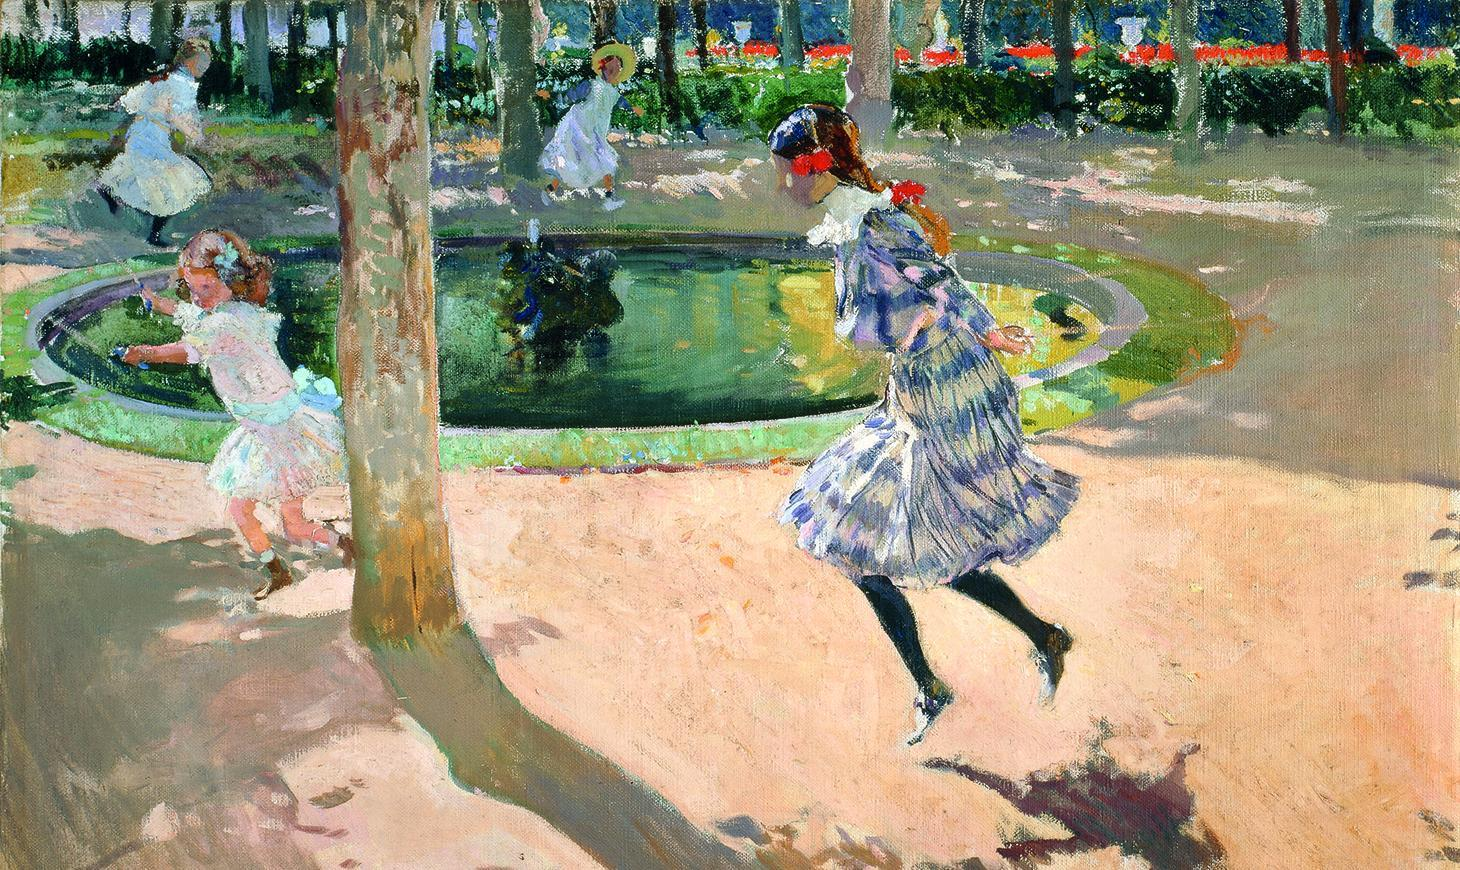 A scene set in a sun dappled park - four girls are using jump ropes around a pond. Three of the girls are dressed in white. The eldest girl in the foreground of the picture is wearing a blue and white dress, black stockings, and a red ribbon.